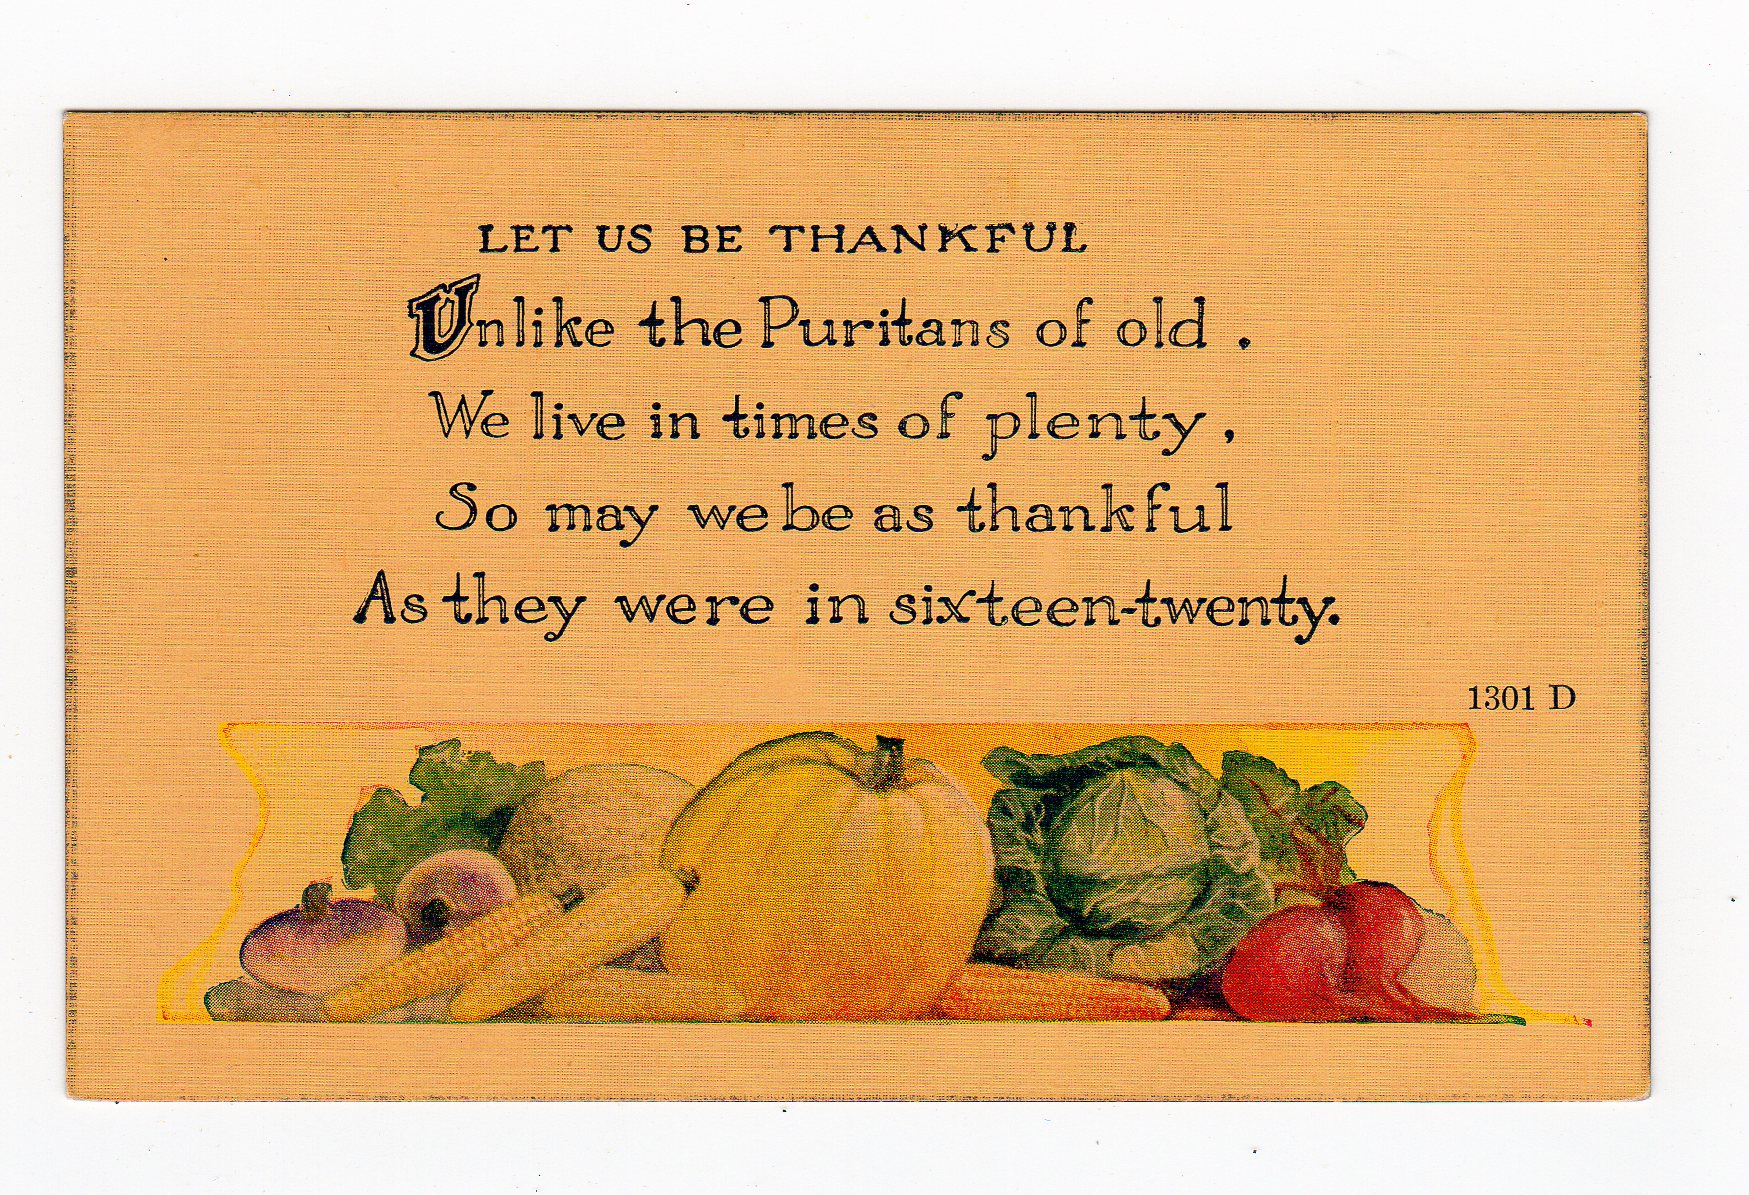 Linen Postcard Thanksgiving Let Us Be Thankful Unlike The Puritans